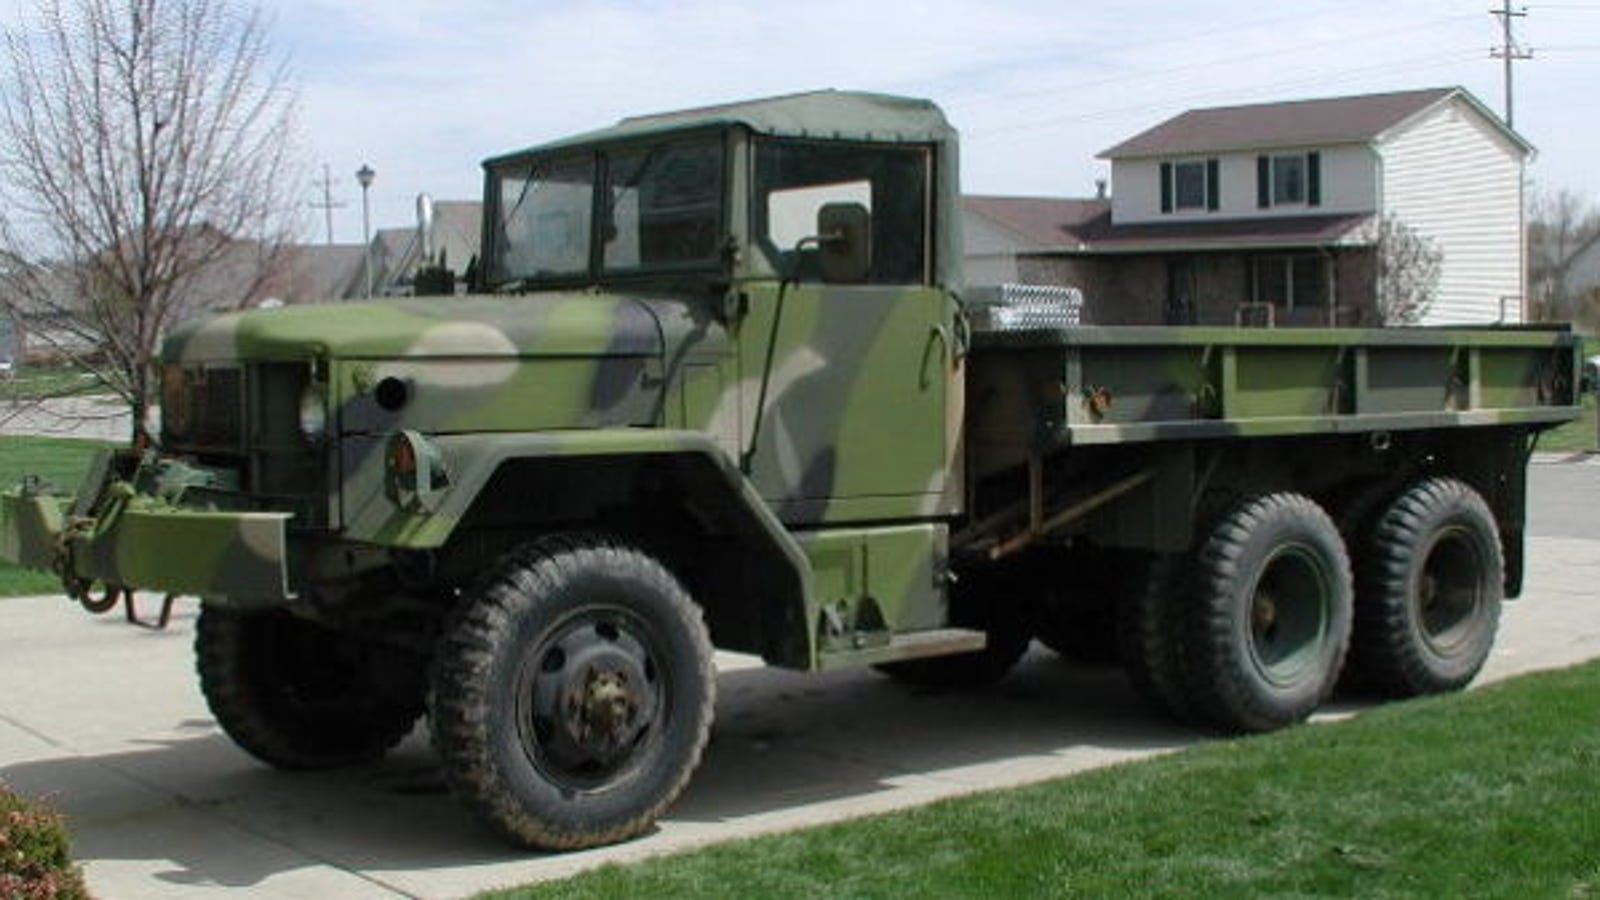 Your Truck Doesn't Compare To This M35A2 'Deuce And A Half'